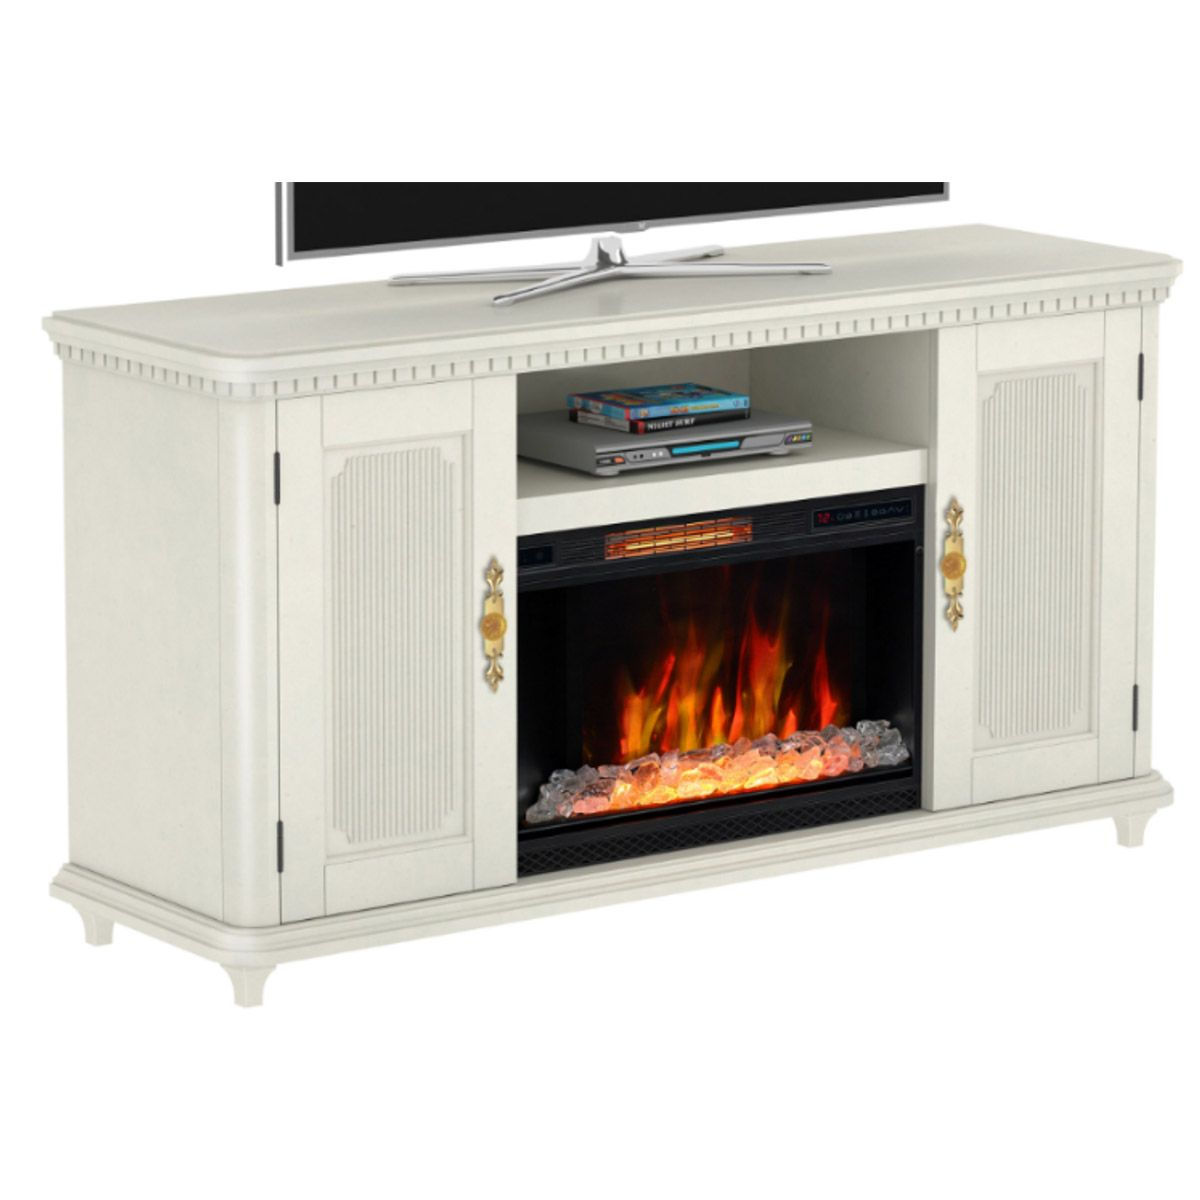 Tv Stand With Optional Classicflame Electric Fireplace 26cm7541